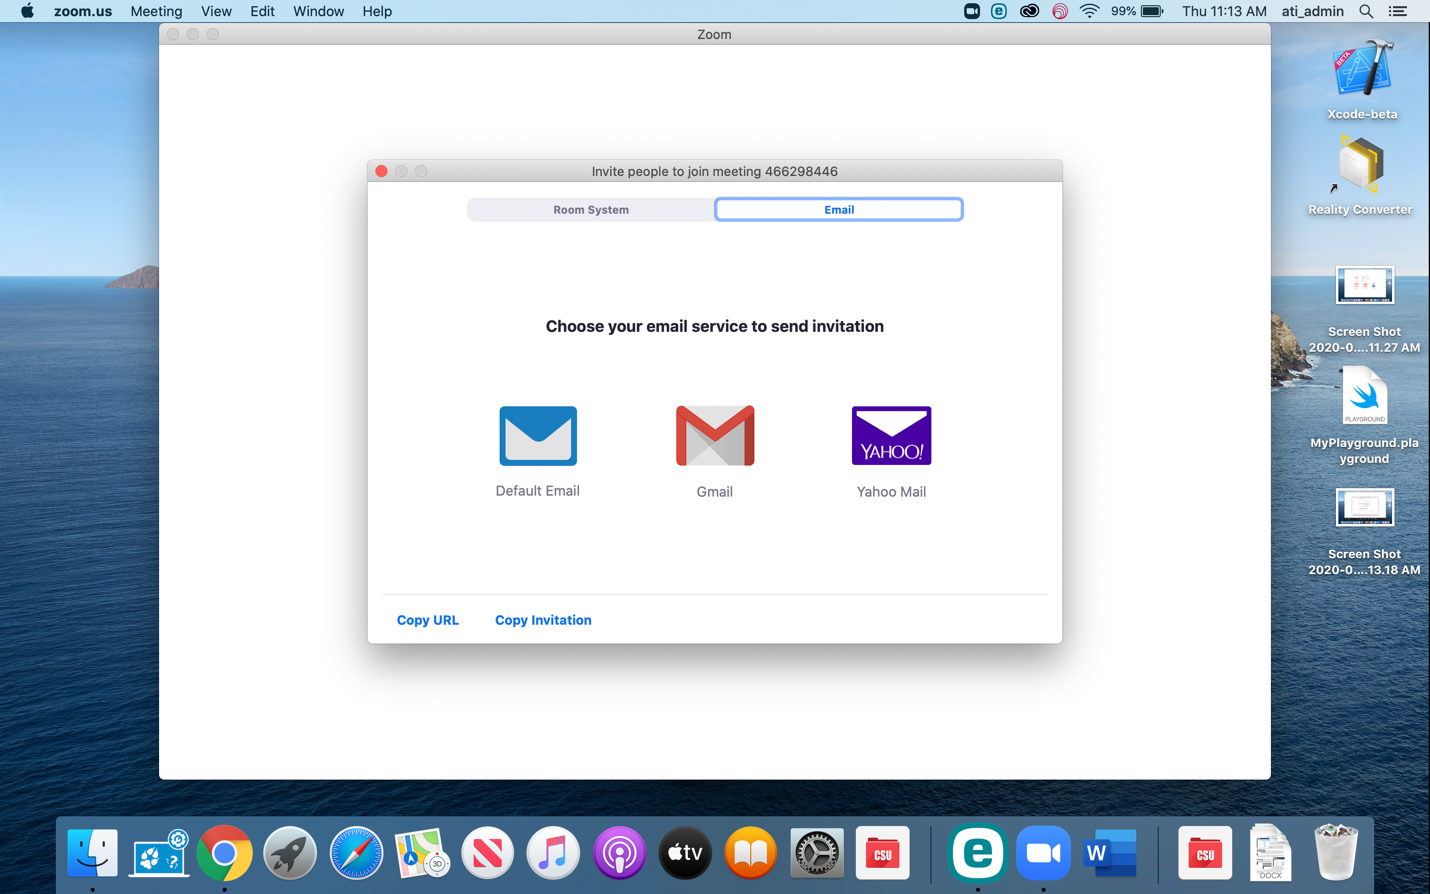 Options to email the zoom link.